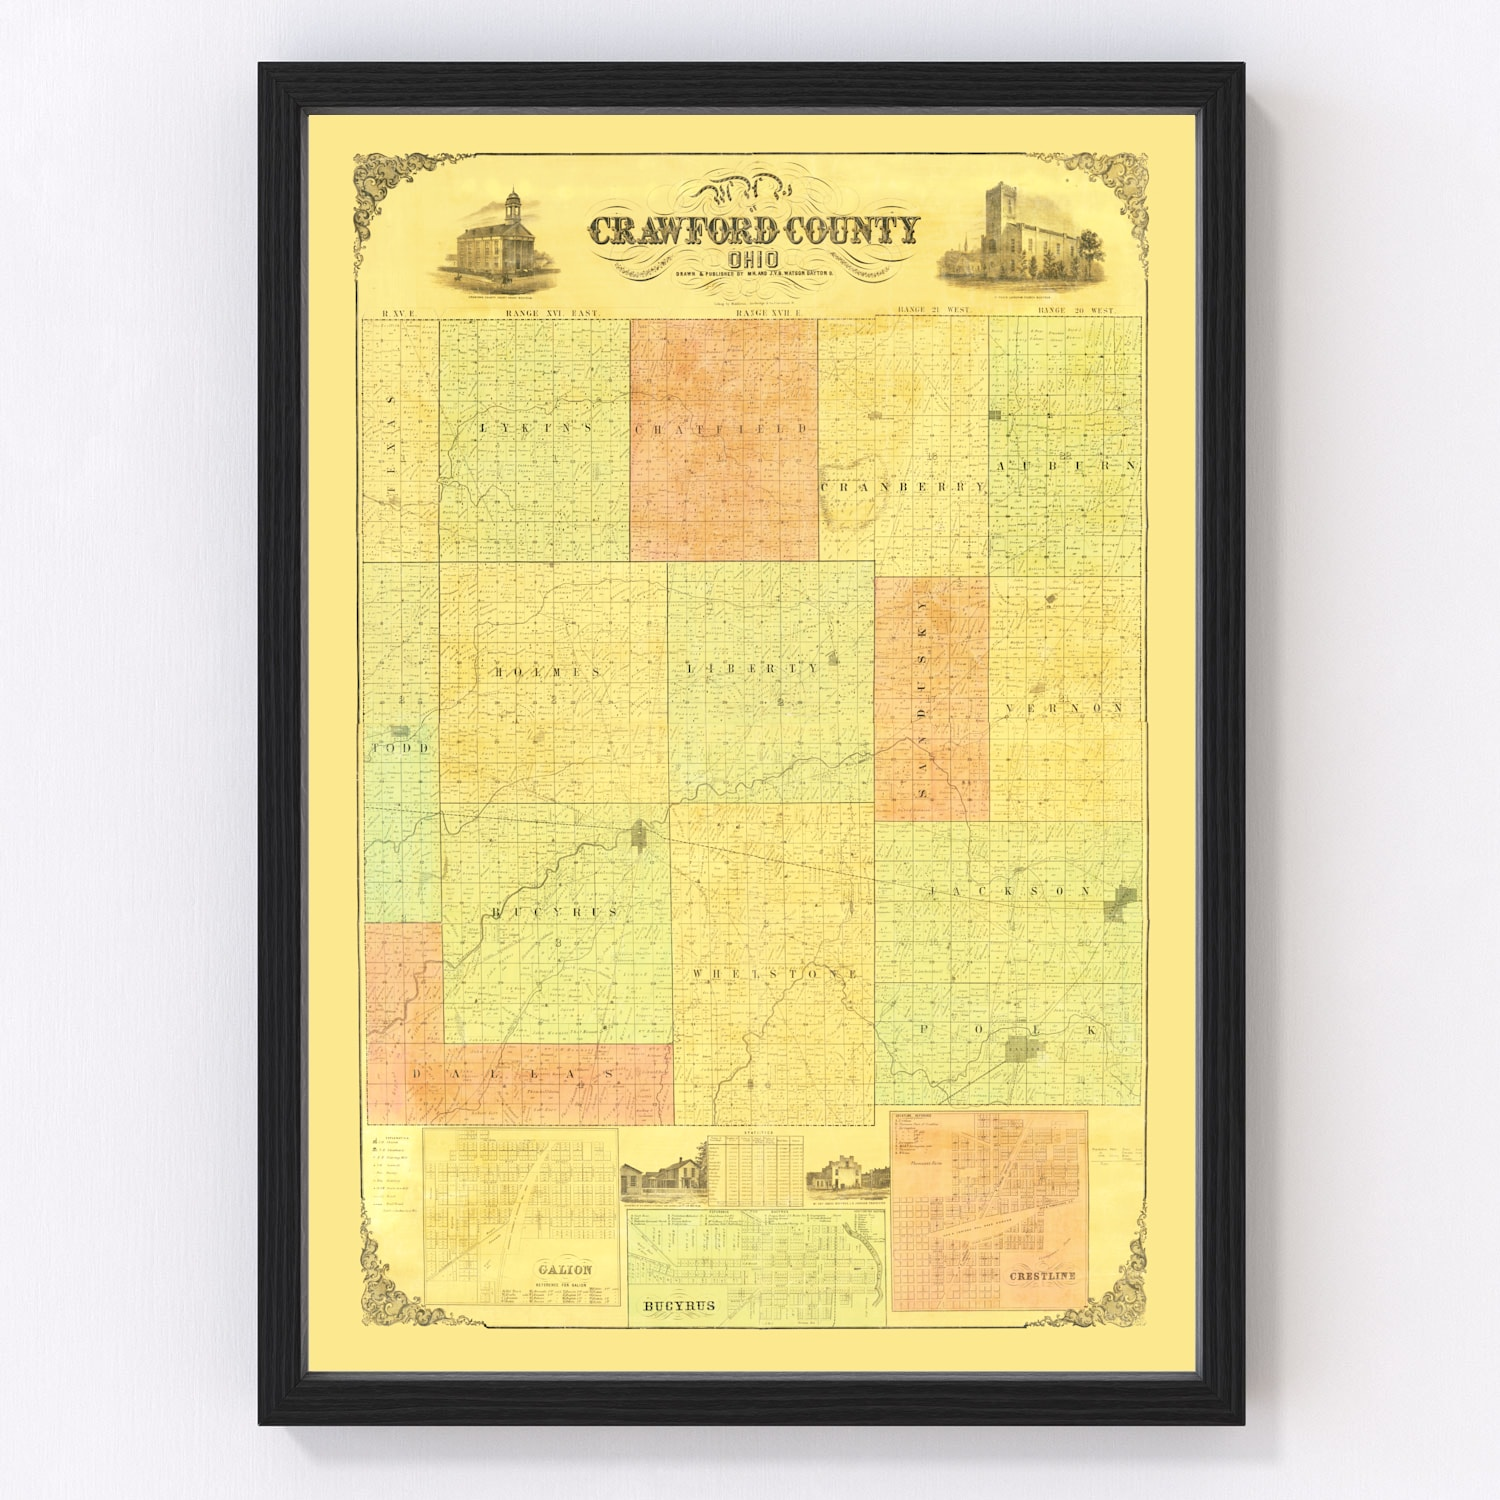 Vintage Map of Crawford County, Ohio 1850